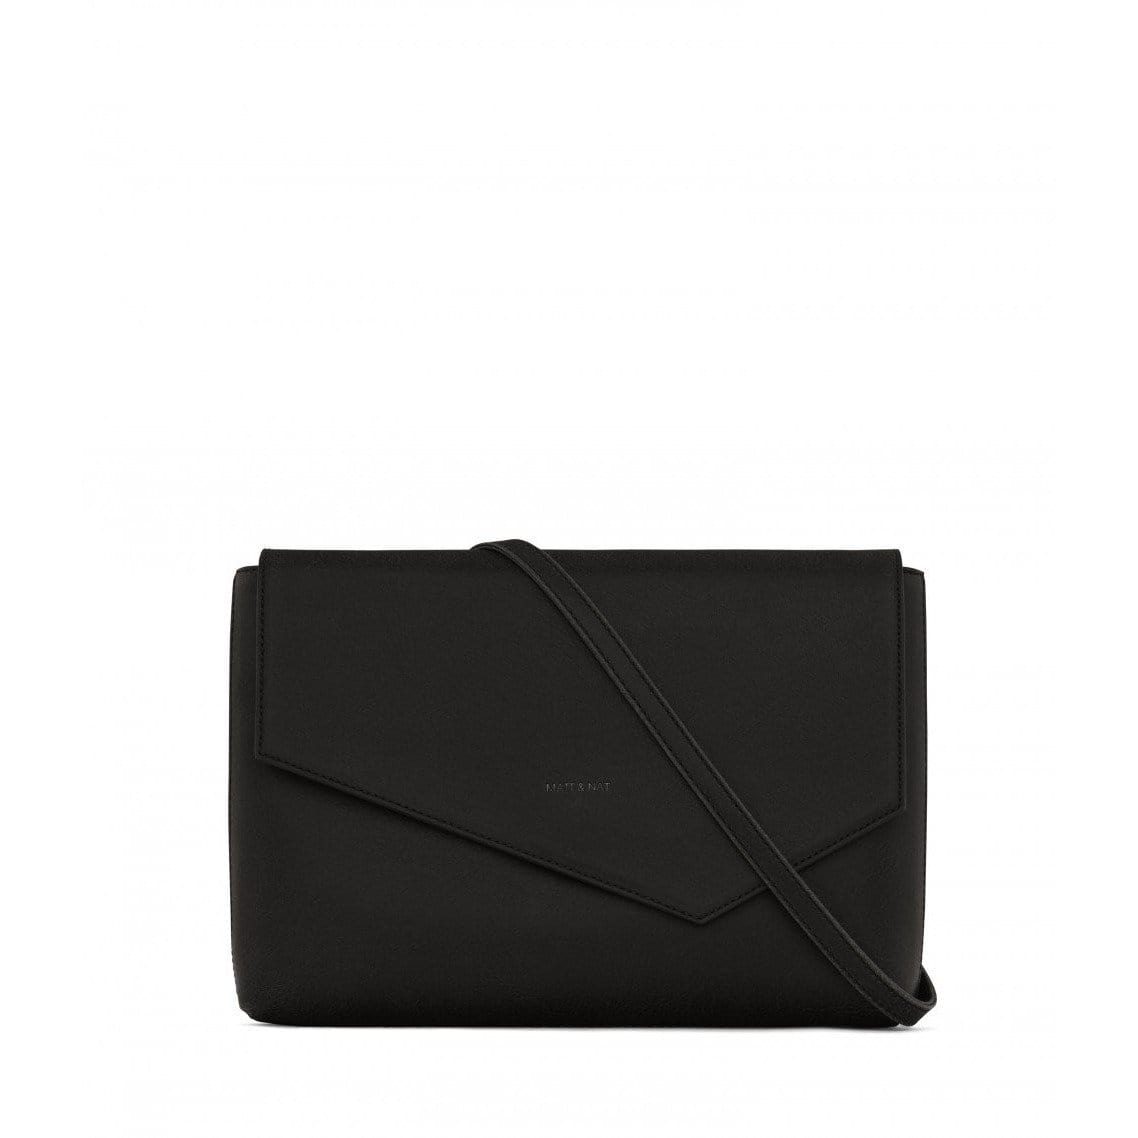 Matt & Nat BLACK / N/S Matt & Nat Riya Vintage Crossbody Bag + more colours